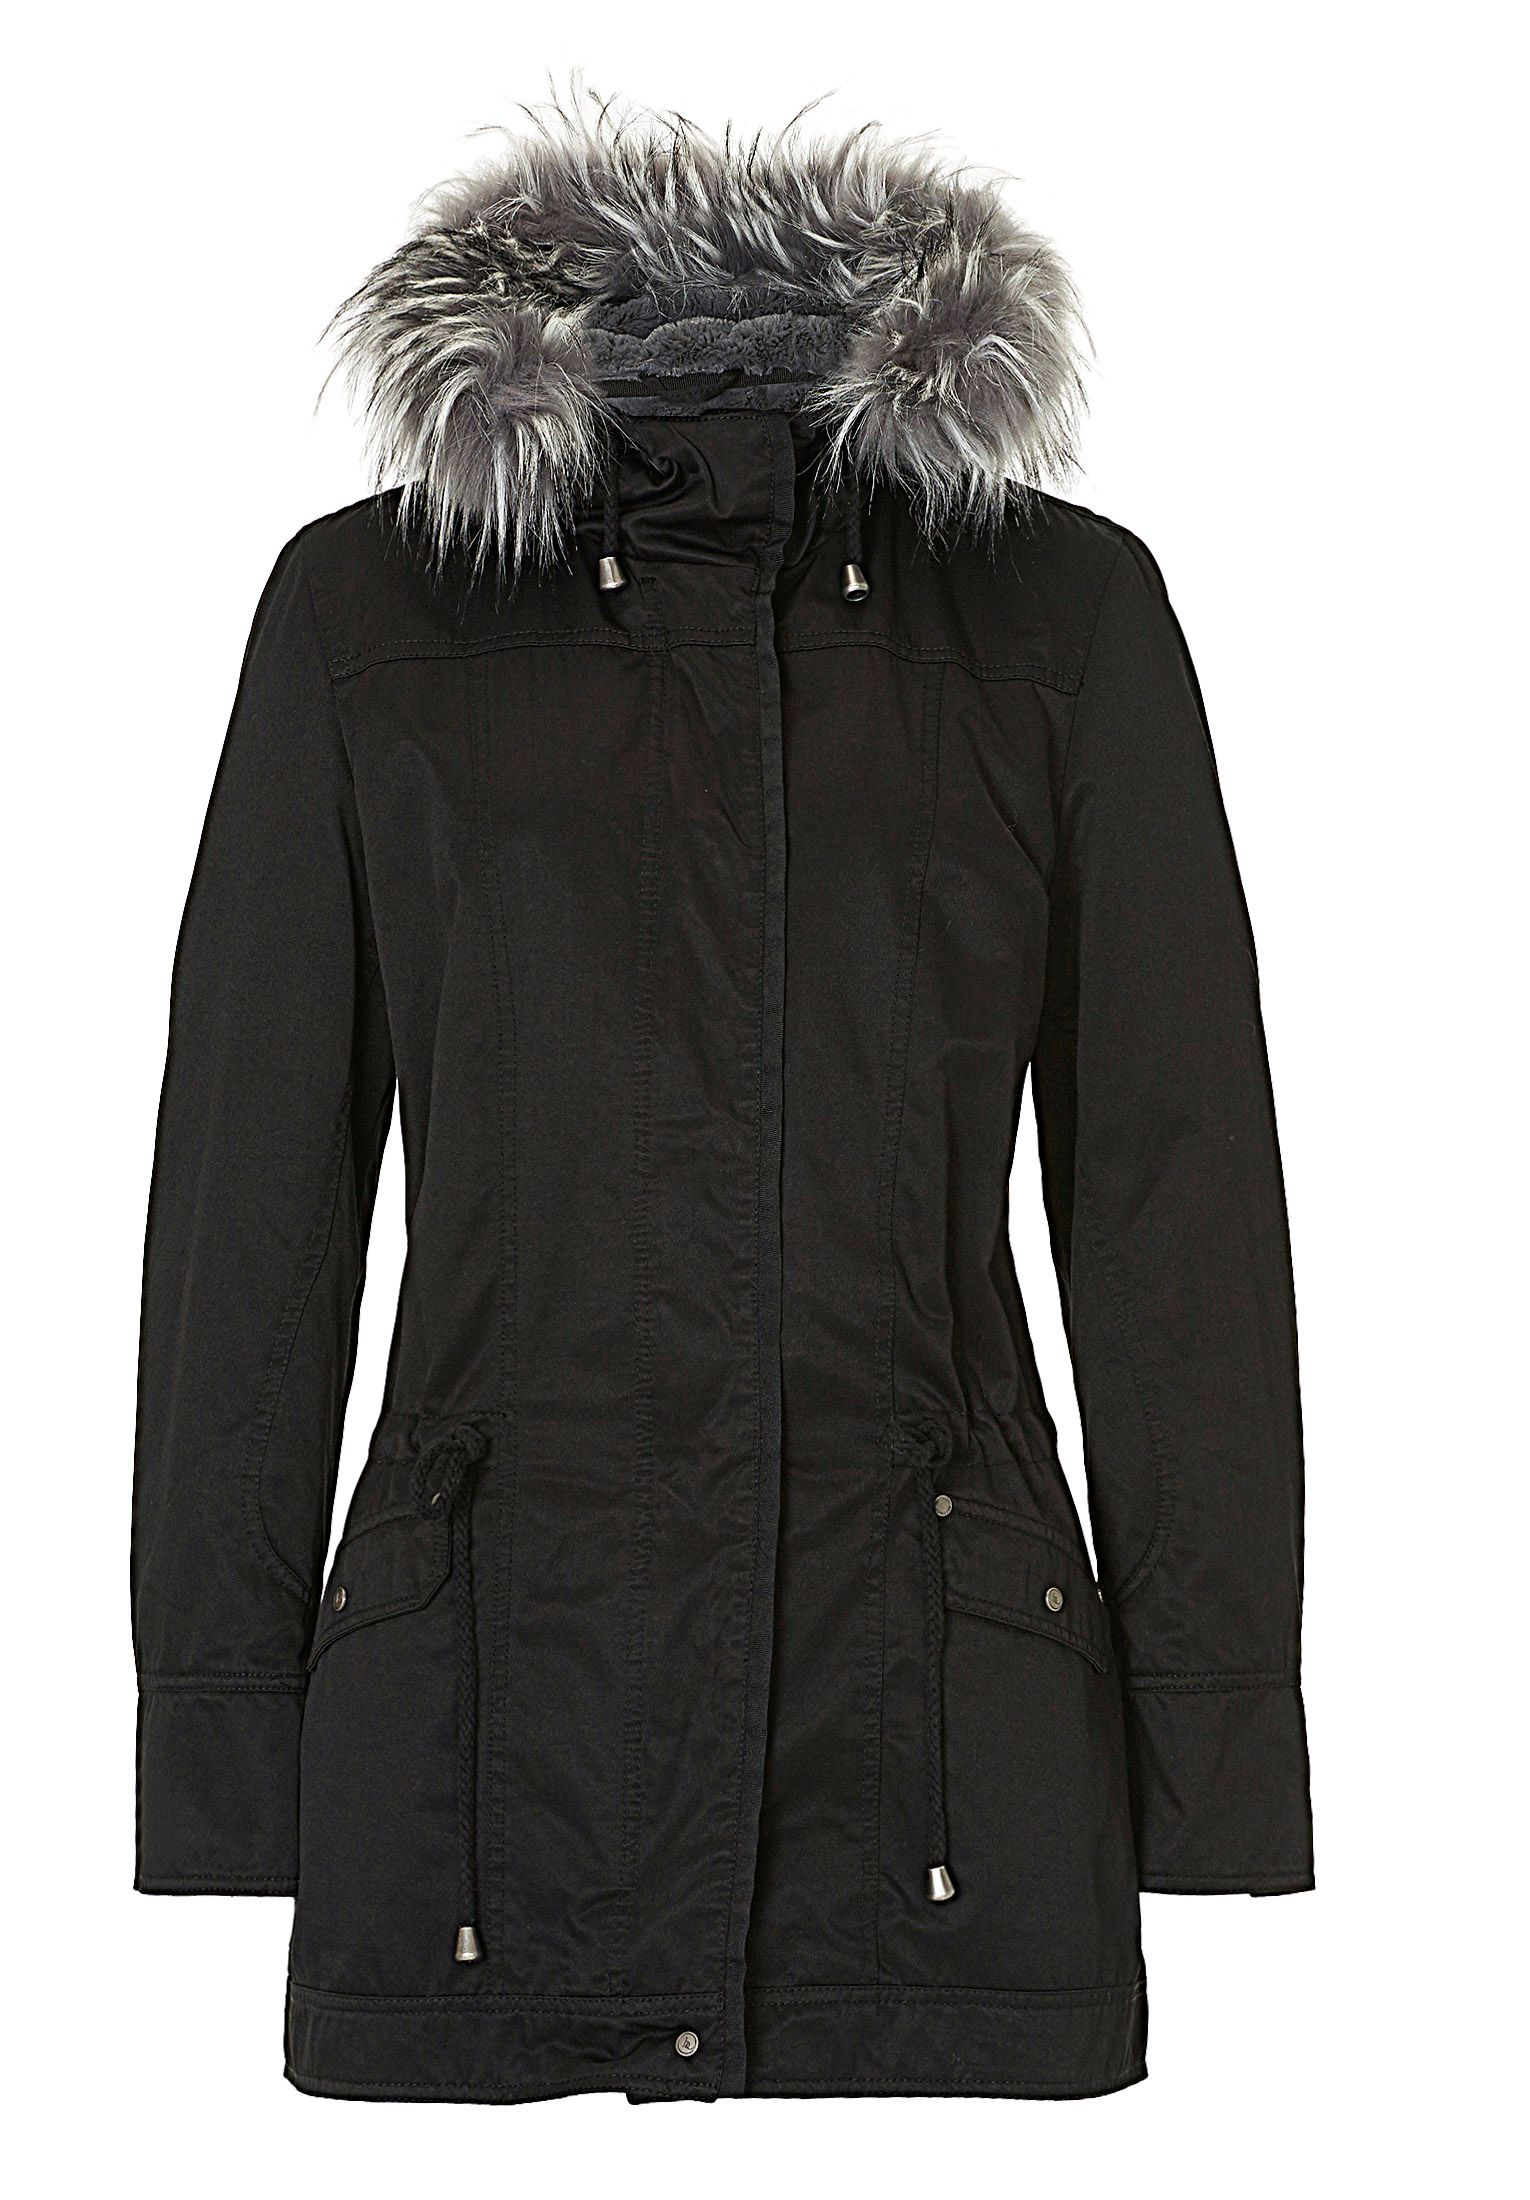 Betty & Co. Hooded jacket with faux fur trim, Black